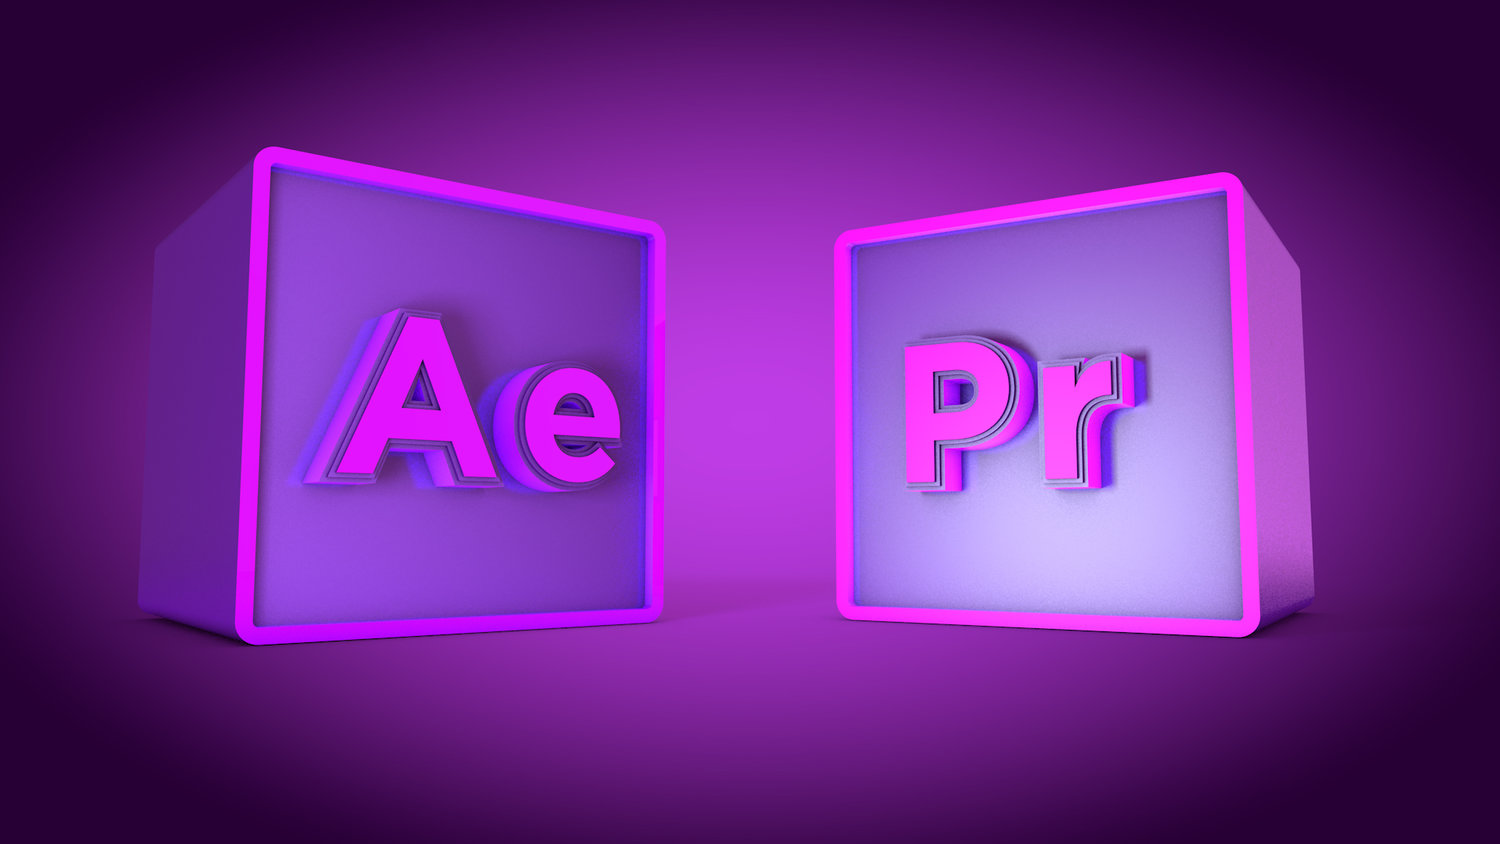 After Effects Text Templates | Live Text Templates With After Effects Premiere Pro Cc 2017